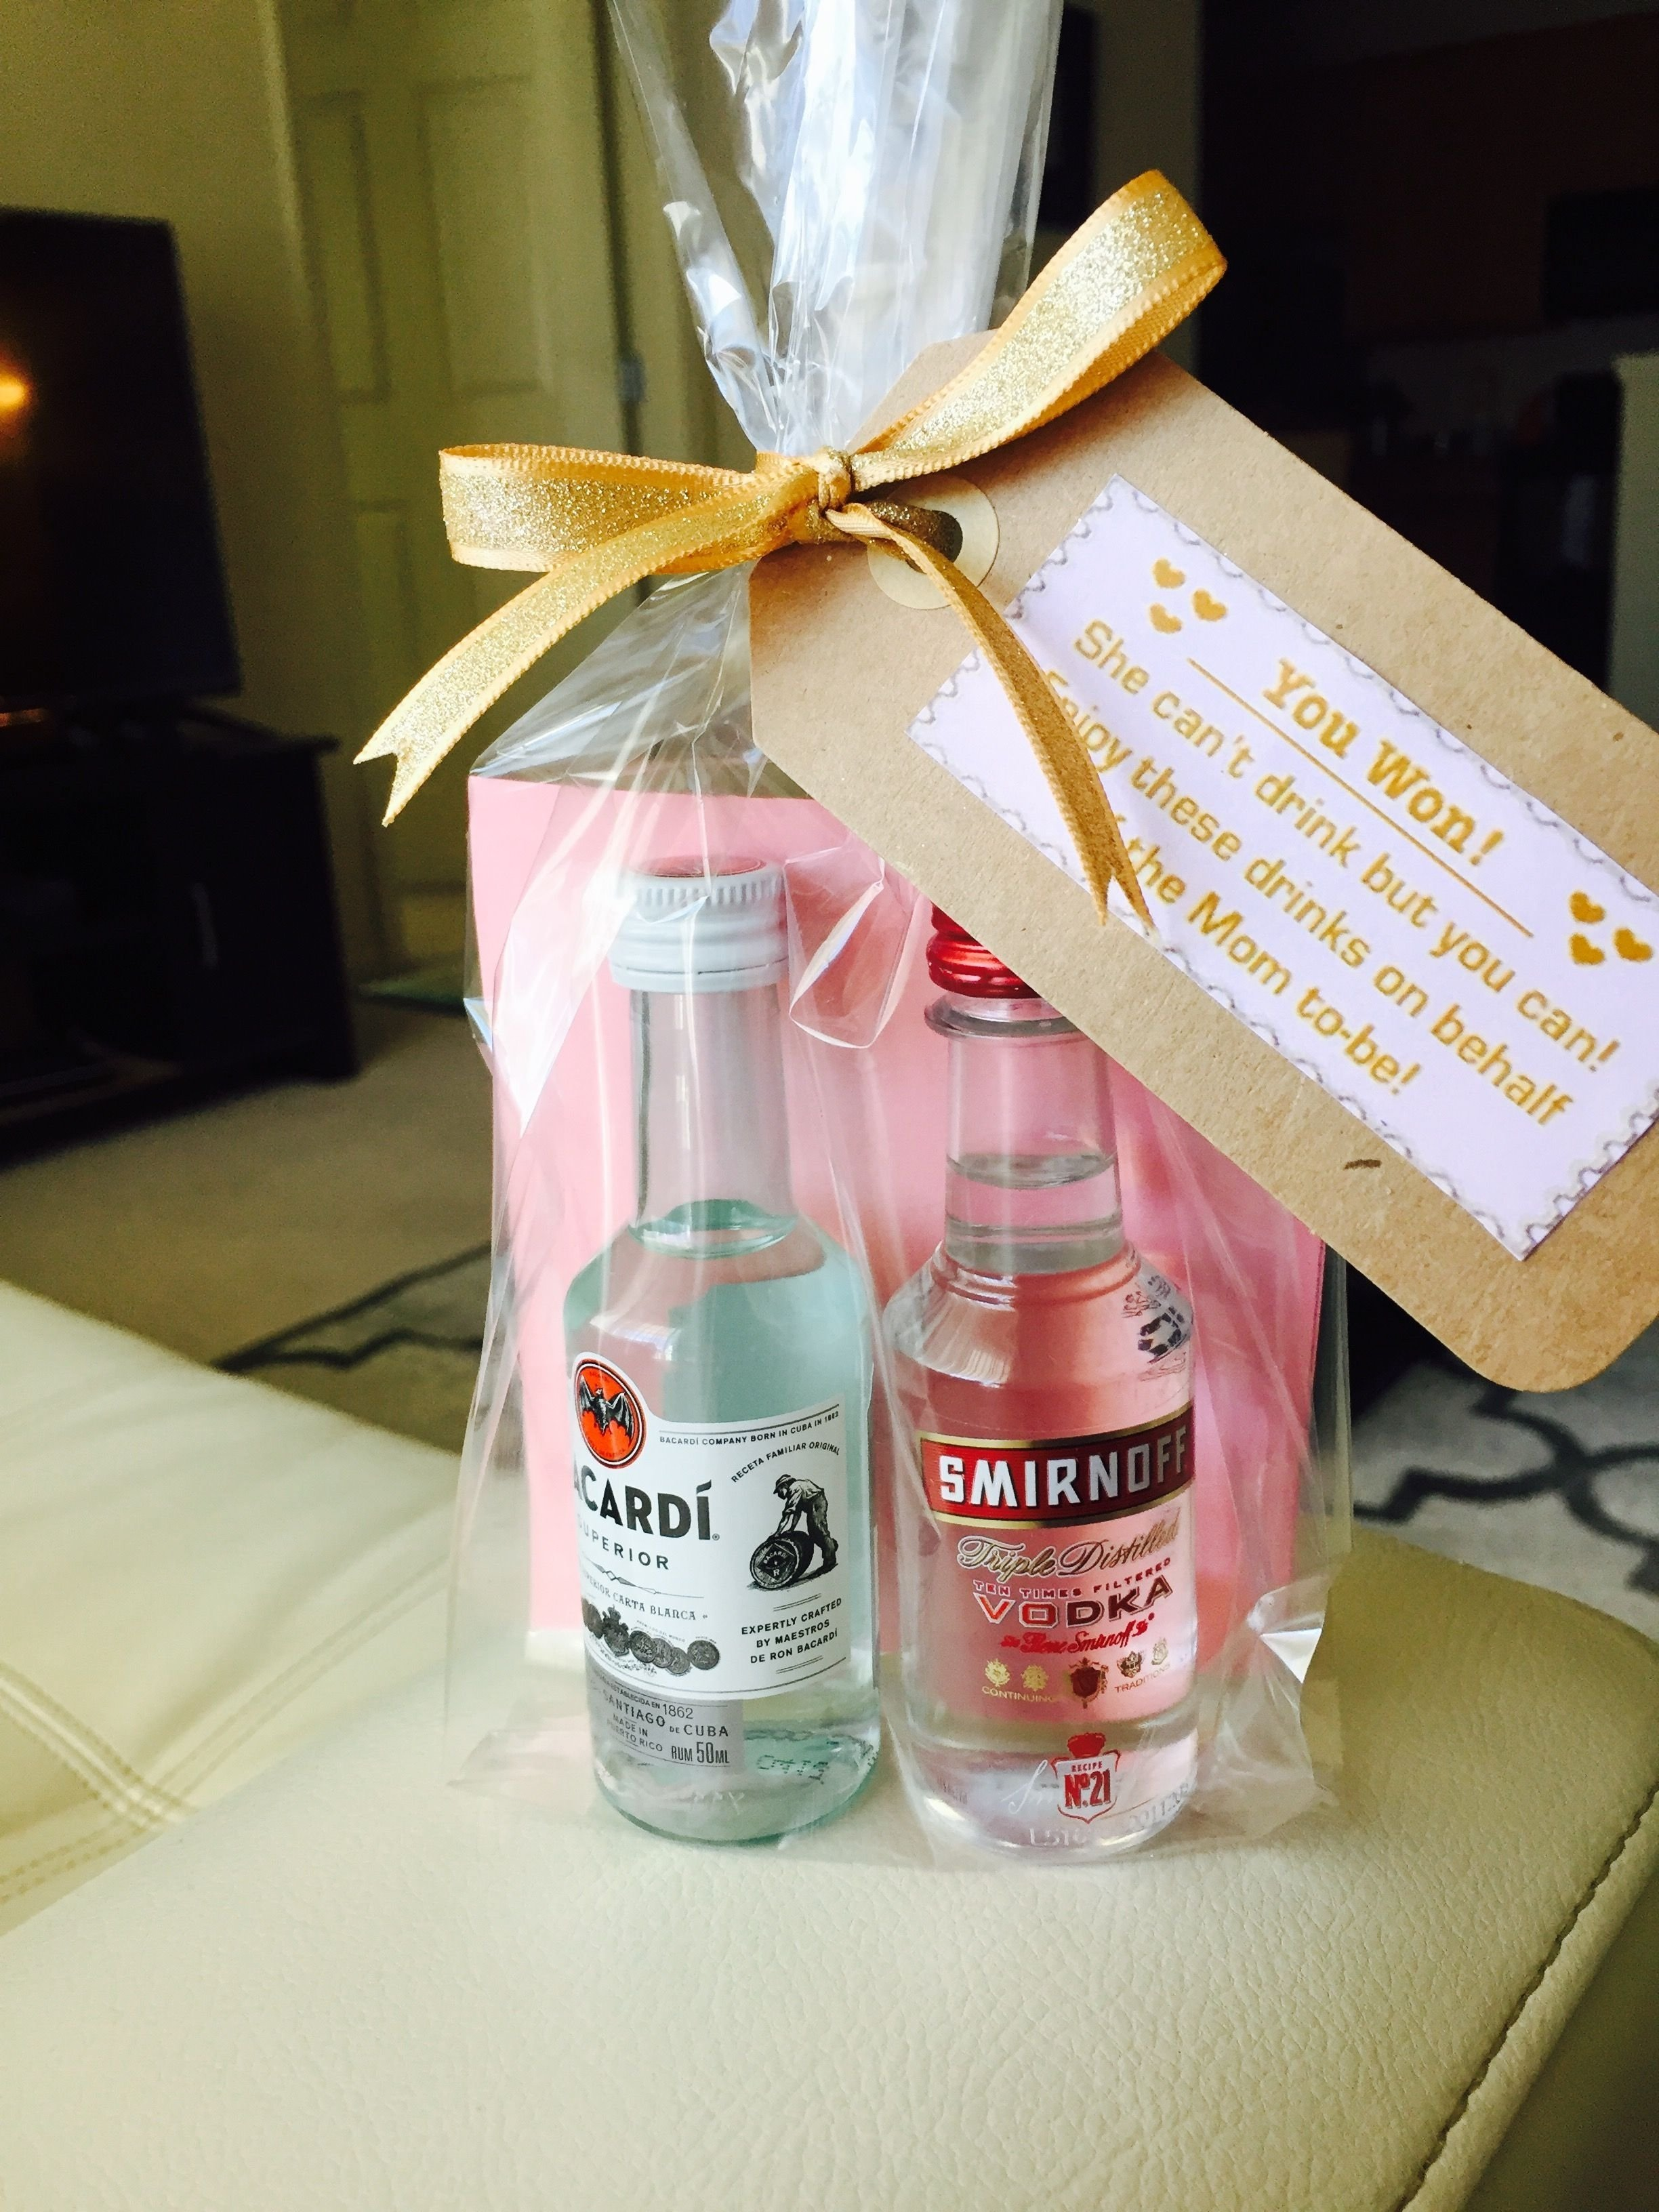 10 Famous Cheap Baby Shower Favors Ideas diy baby shower game favors for men for a co ed shower cute gift 12 2021